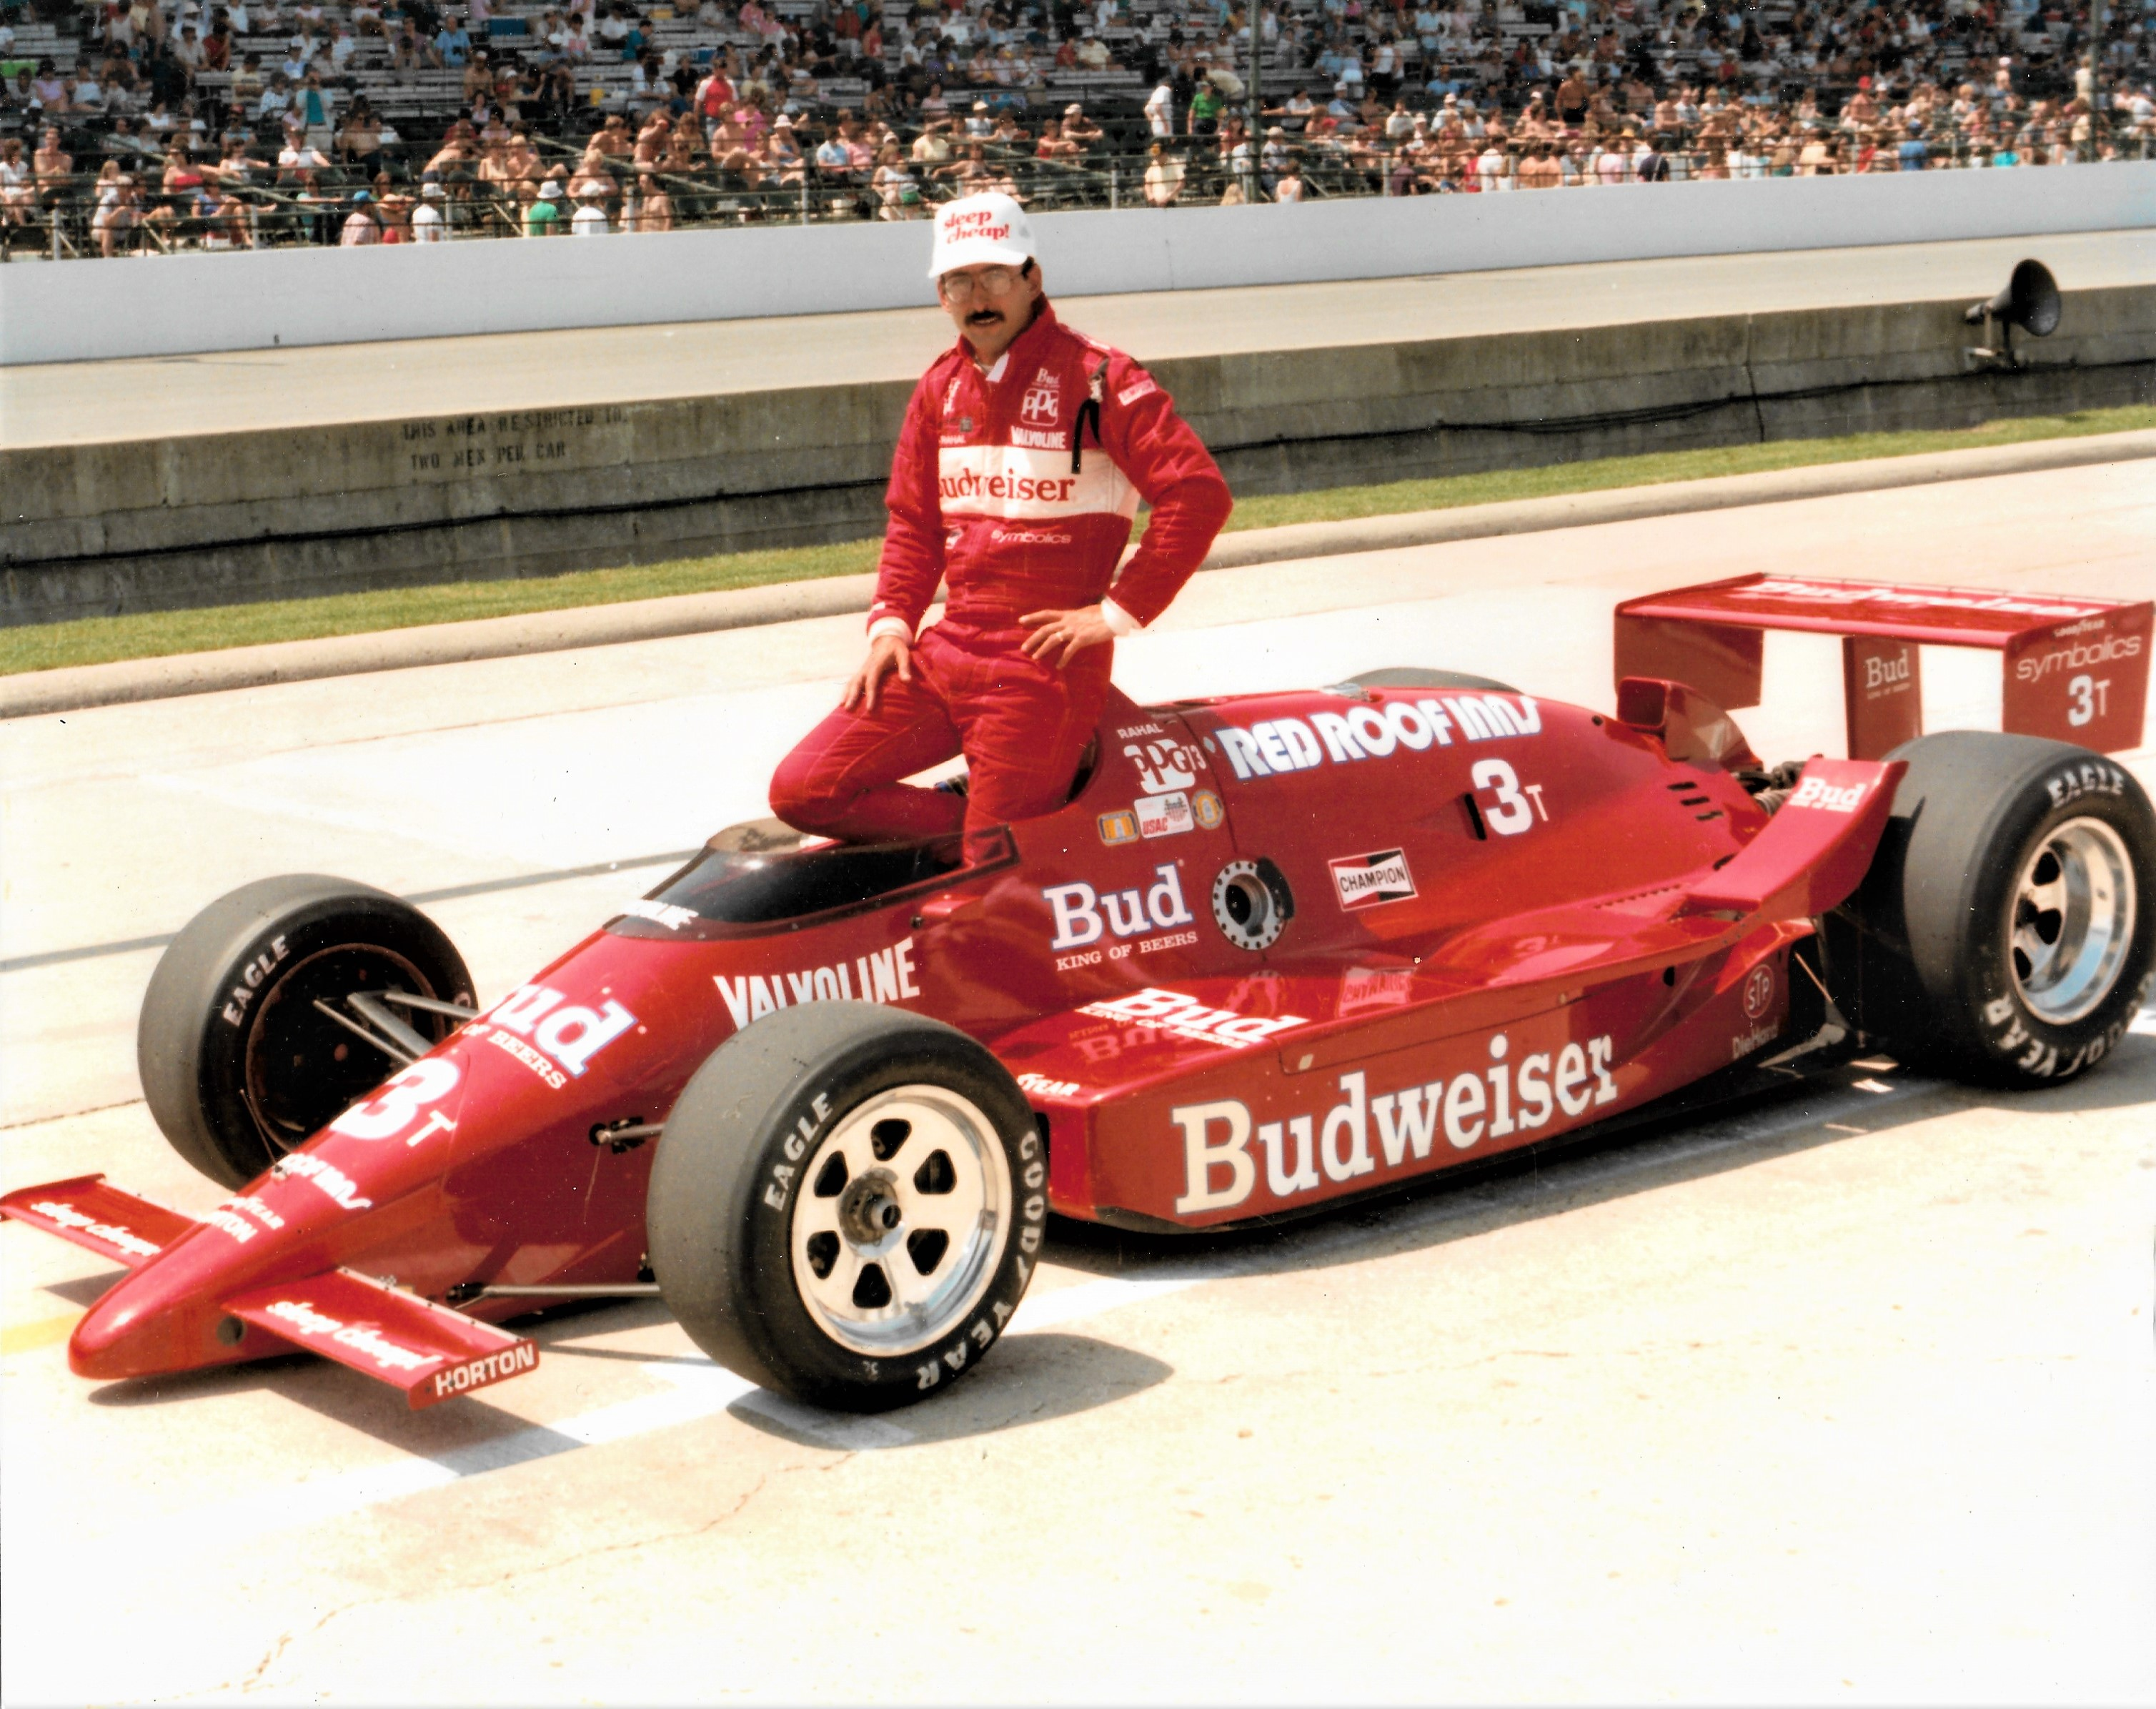 Bobby Rahal - 1986 Budweiser Truesports March/Cosworth